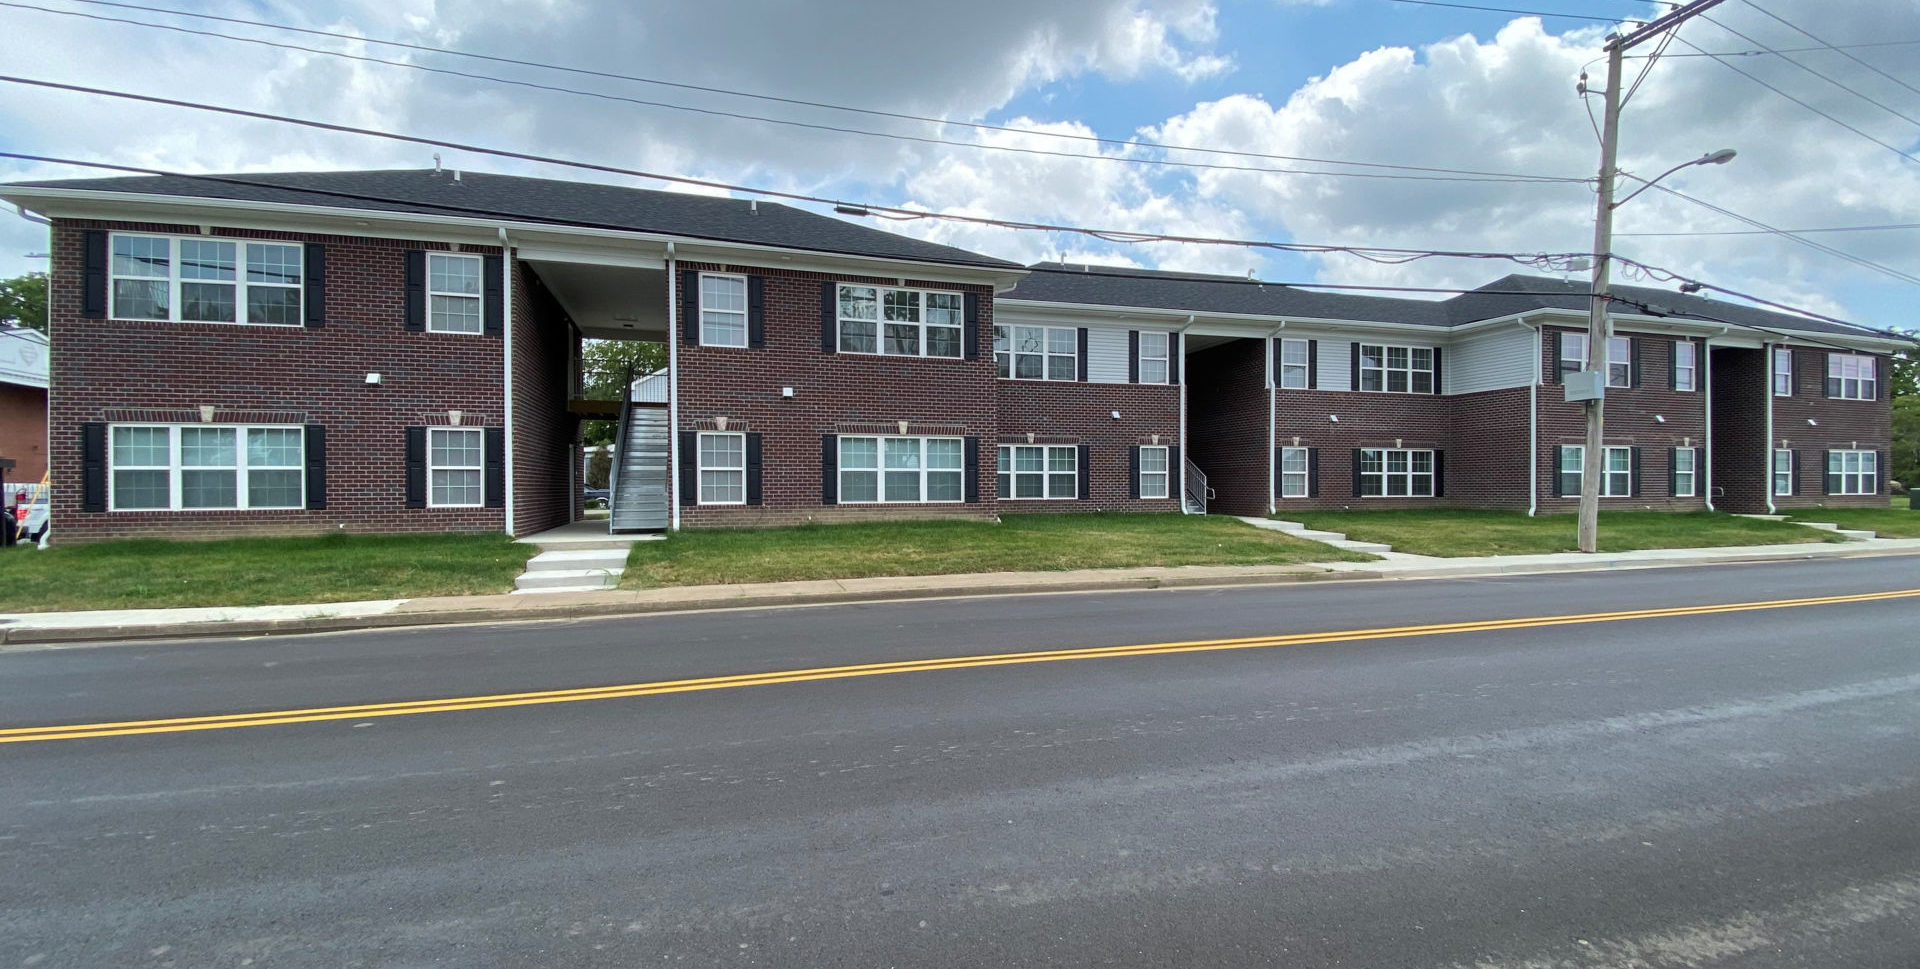 The Nicky Hayden Apartments in Owensboro, Kentucky. Photo courtesy the Hayden family.